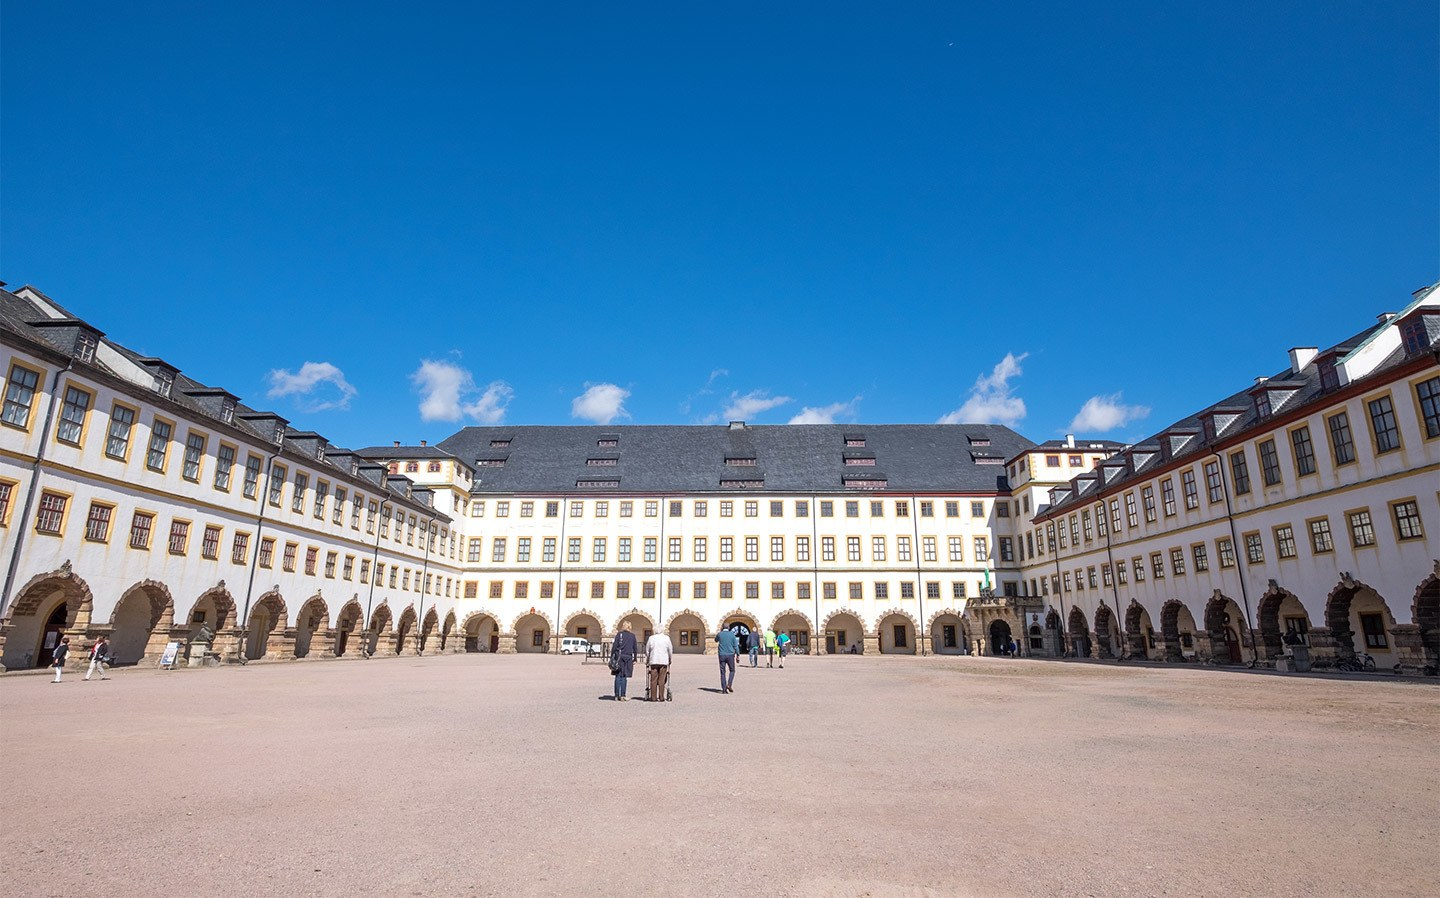 Friedenstein Palace